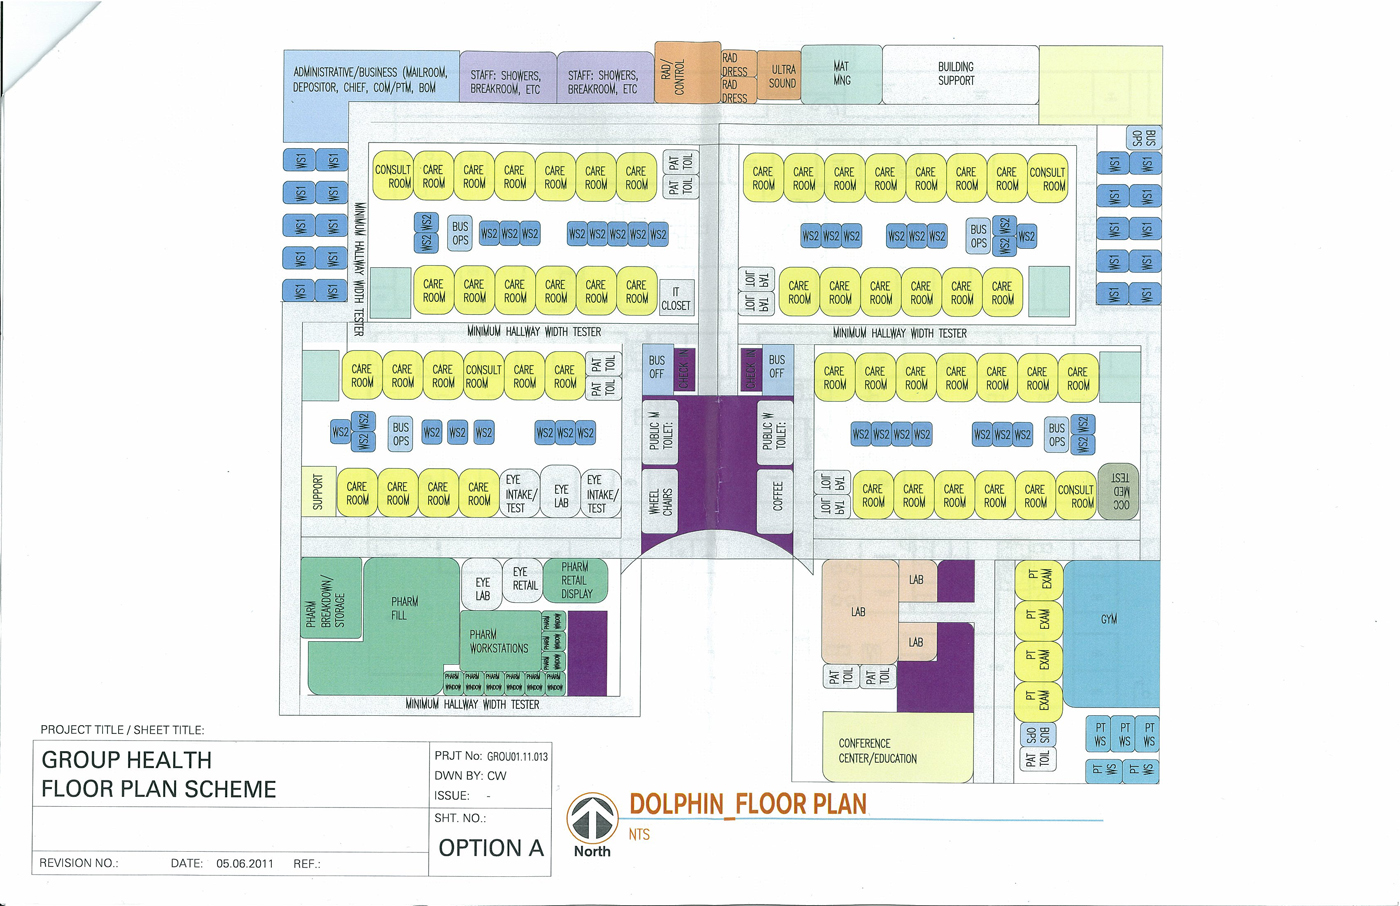 100 Bed Hospital Floor Plans additionally Seniors Care Home In The Works For Fort Chip furthermore 100 Bed Hospital Floor Plans also 62ea89ab1b650495 3d Floor Plans For Building additionally Adventist Rehabilitation Hospital Of Maryland. on long term care facility floor plan